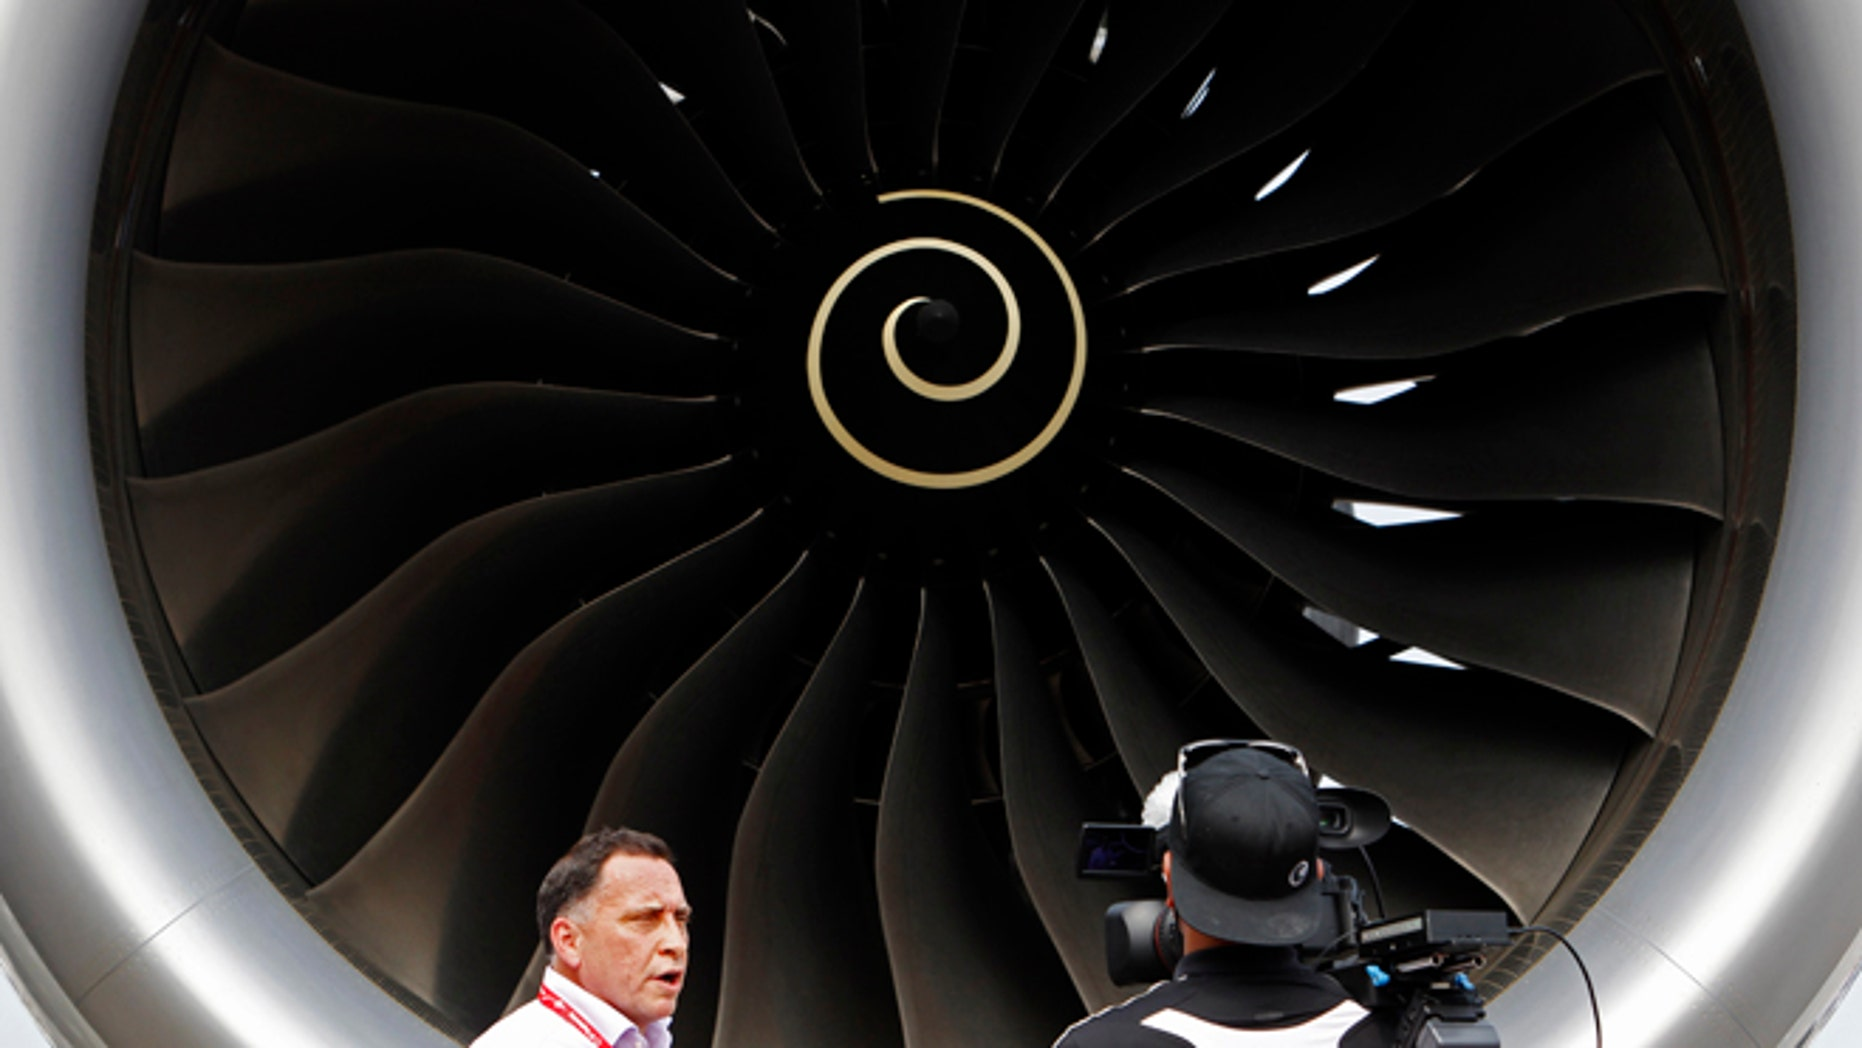 Feb. 11, 2014: Journalists work next to the Rolls Royce engine of an Airbus A350 on display at the Singapore Airshow.